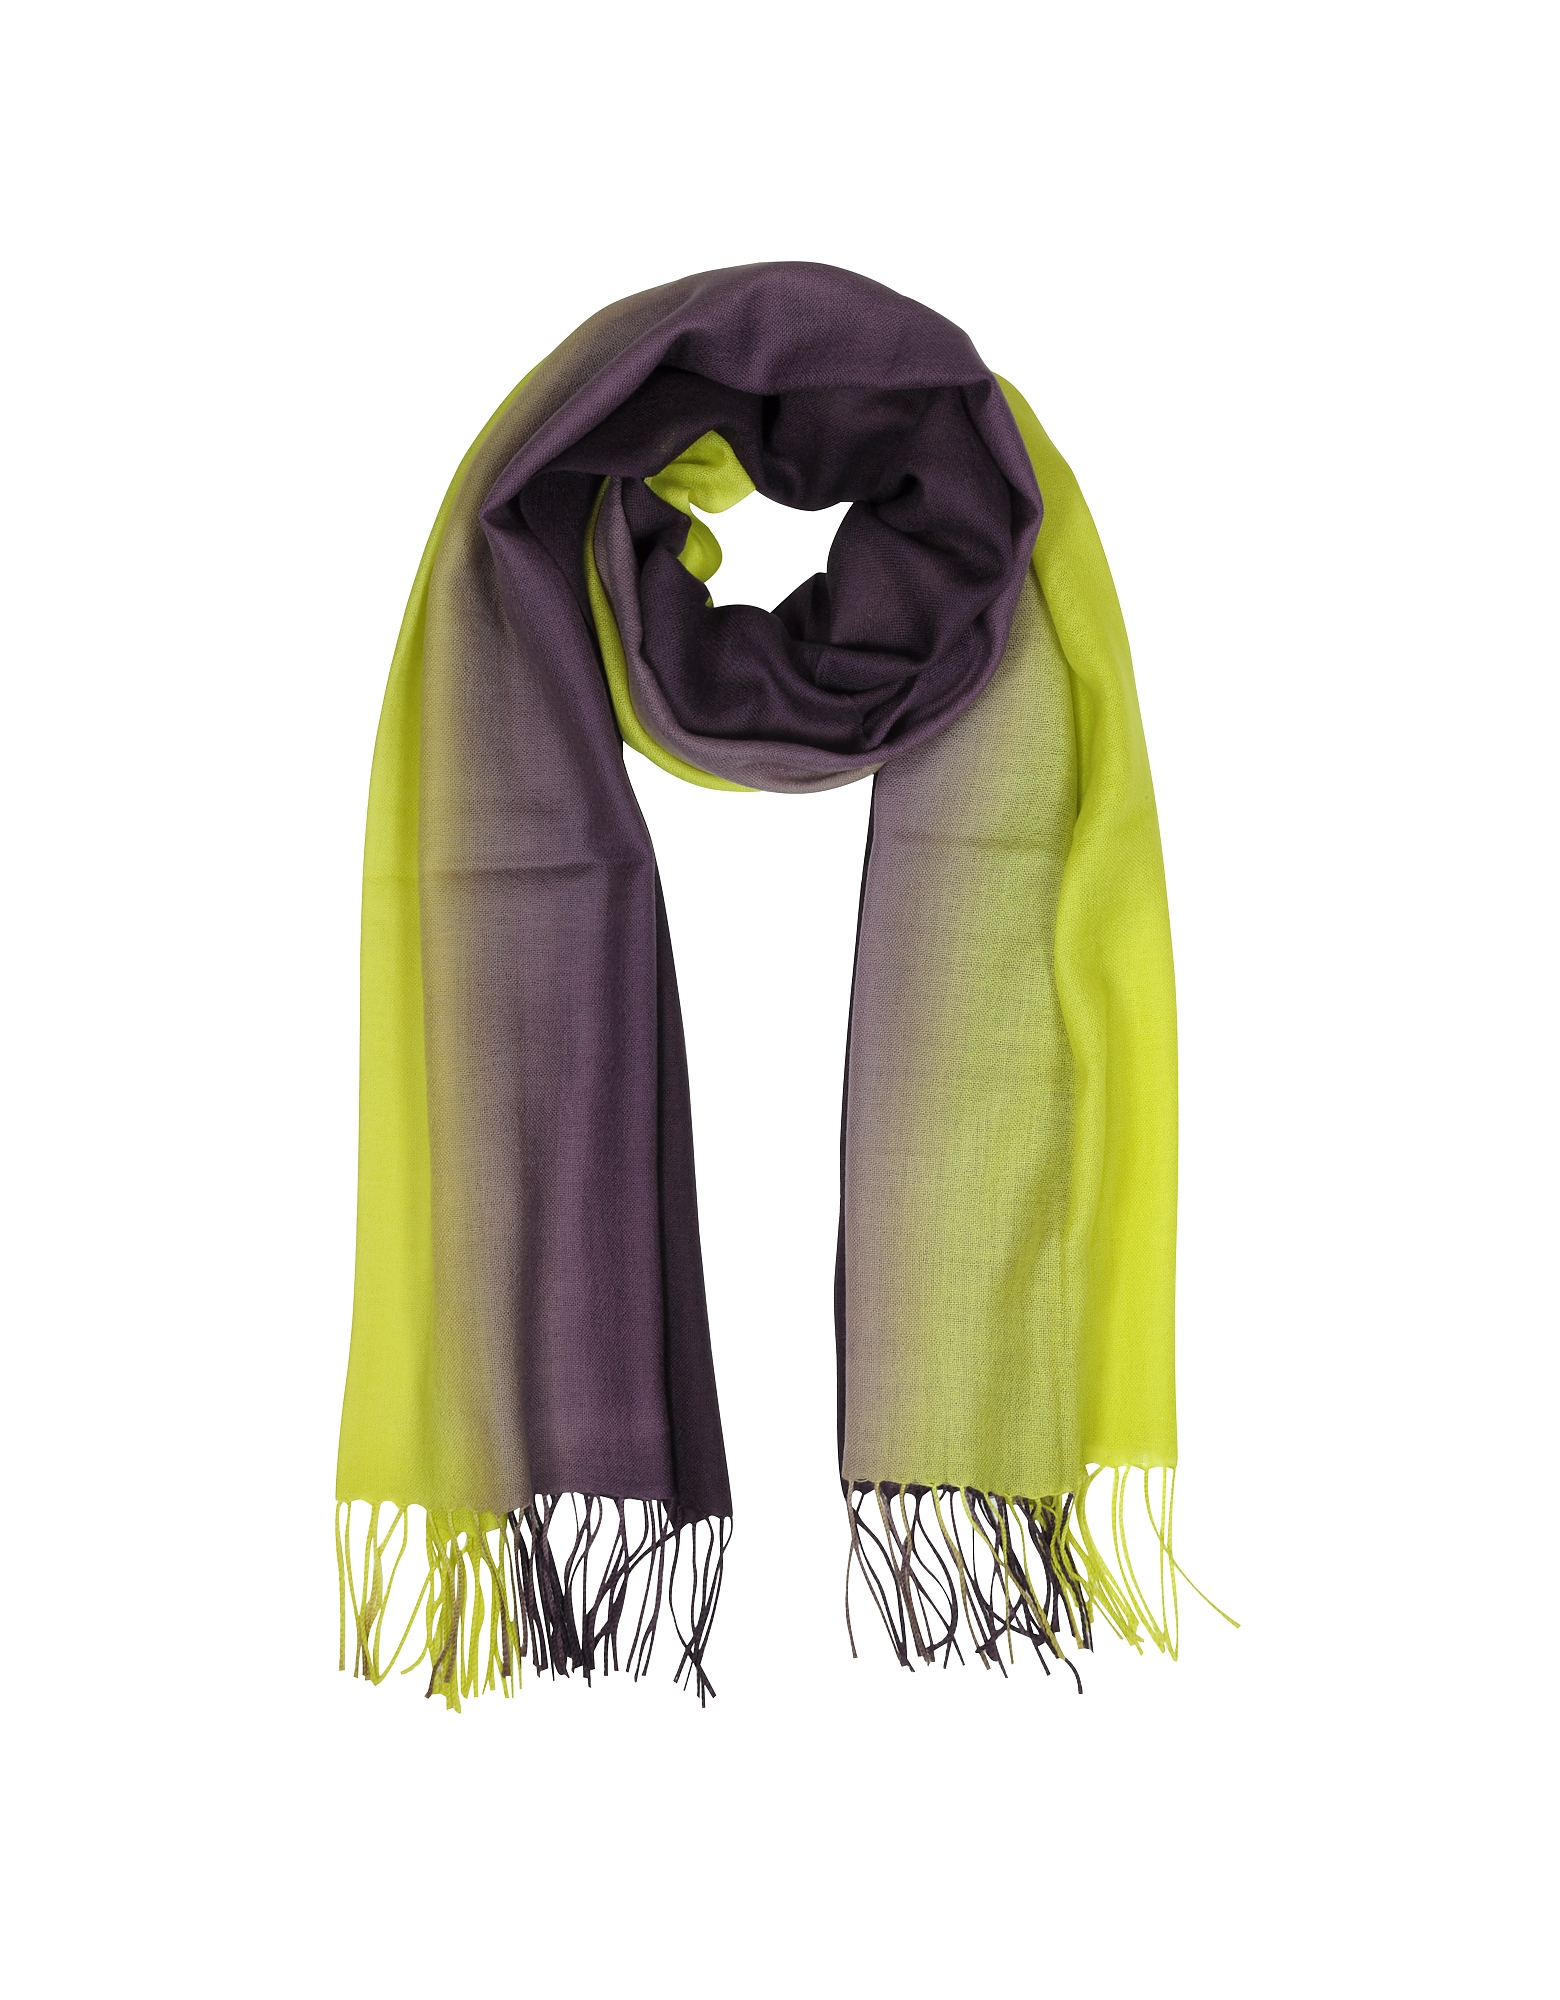 Mila Schon Long Scarves, Cashmere and Wool Fringed Stole